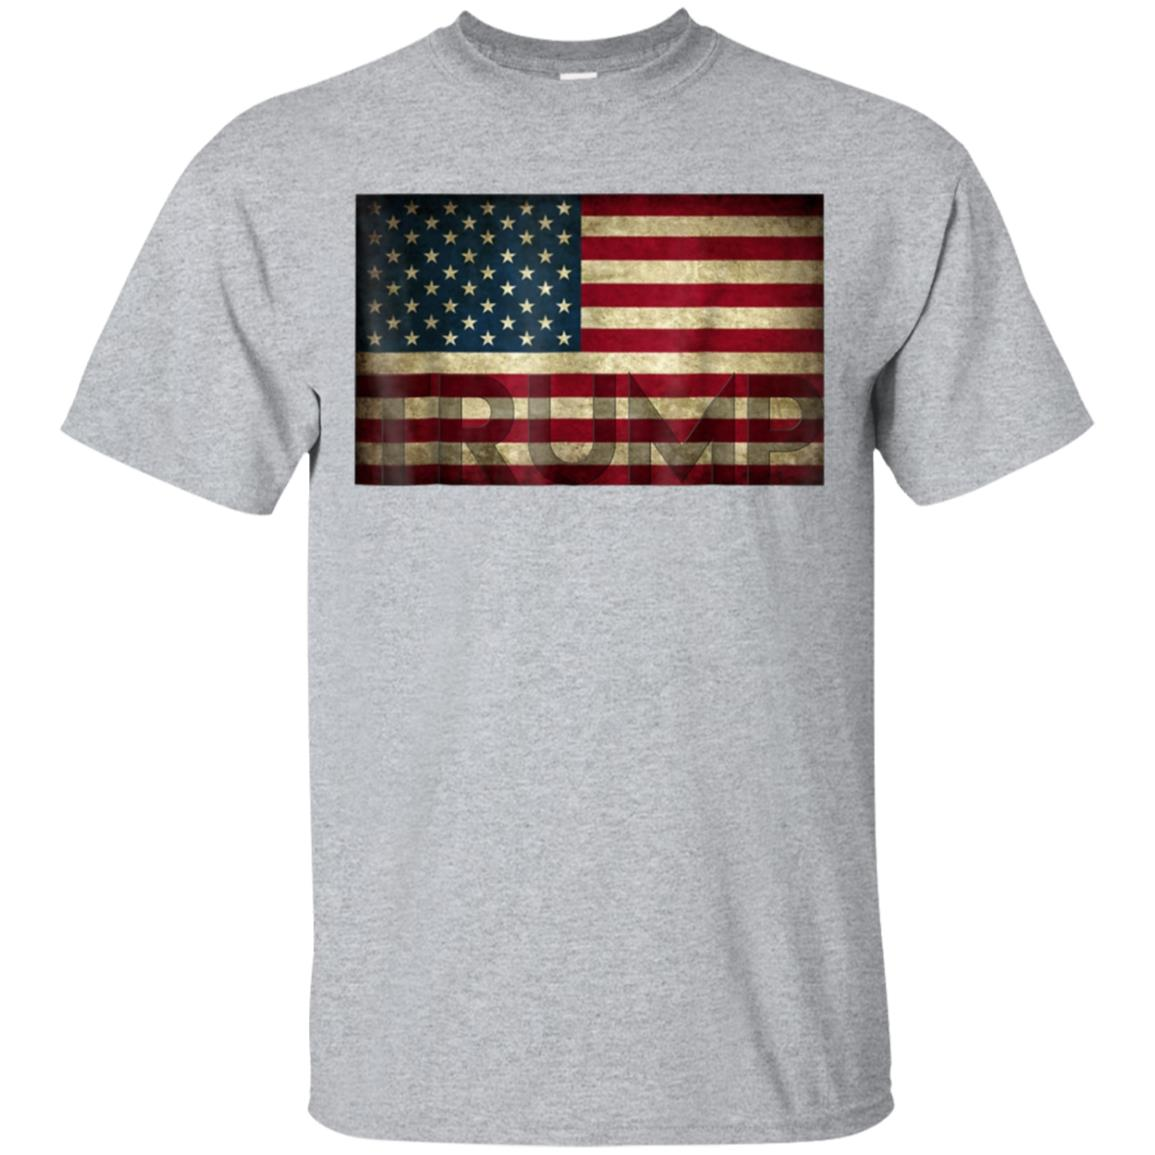 Donald Trump American Flag Shirt 2020 99promocode